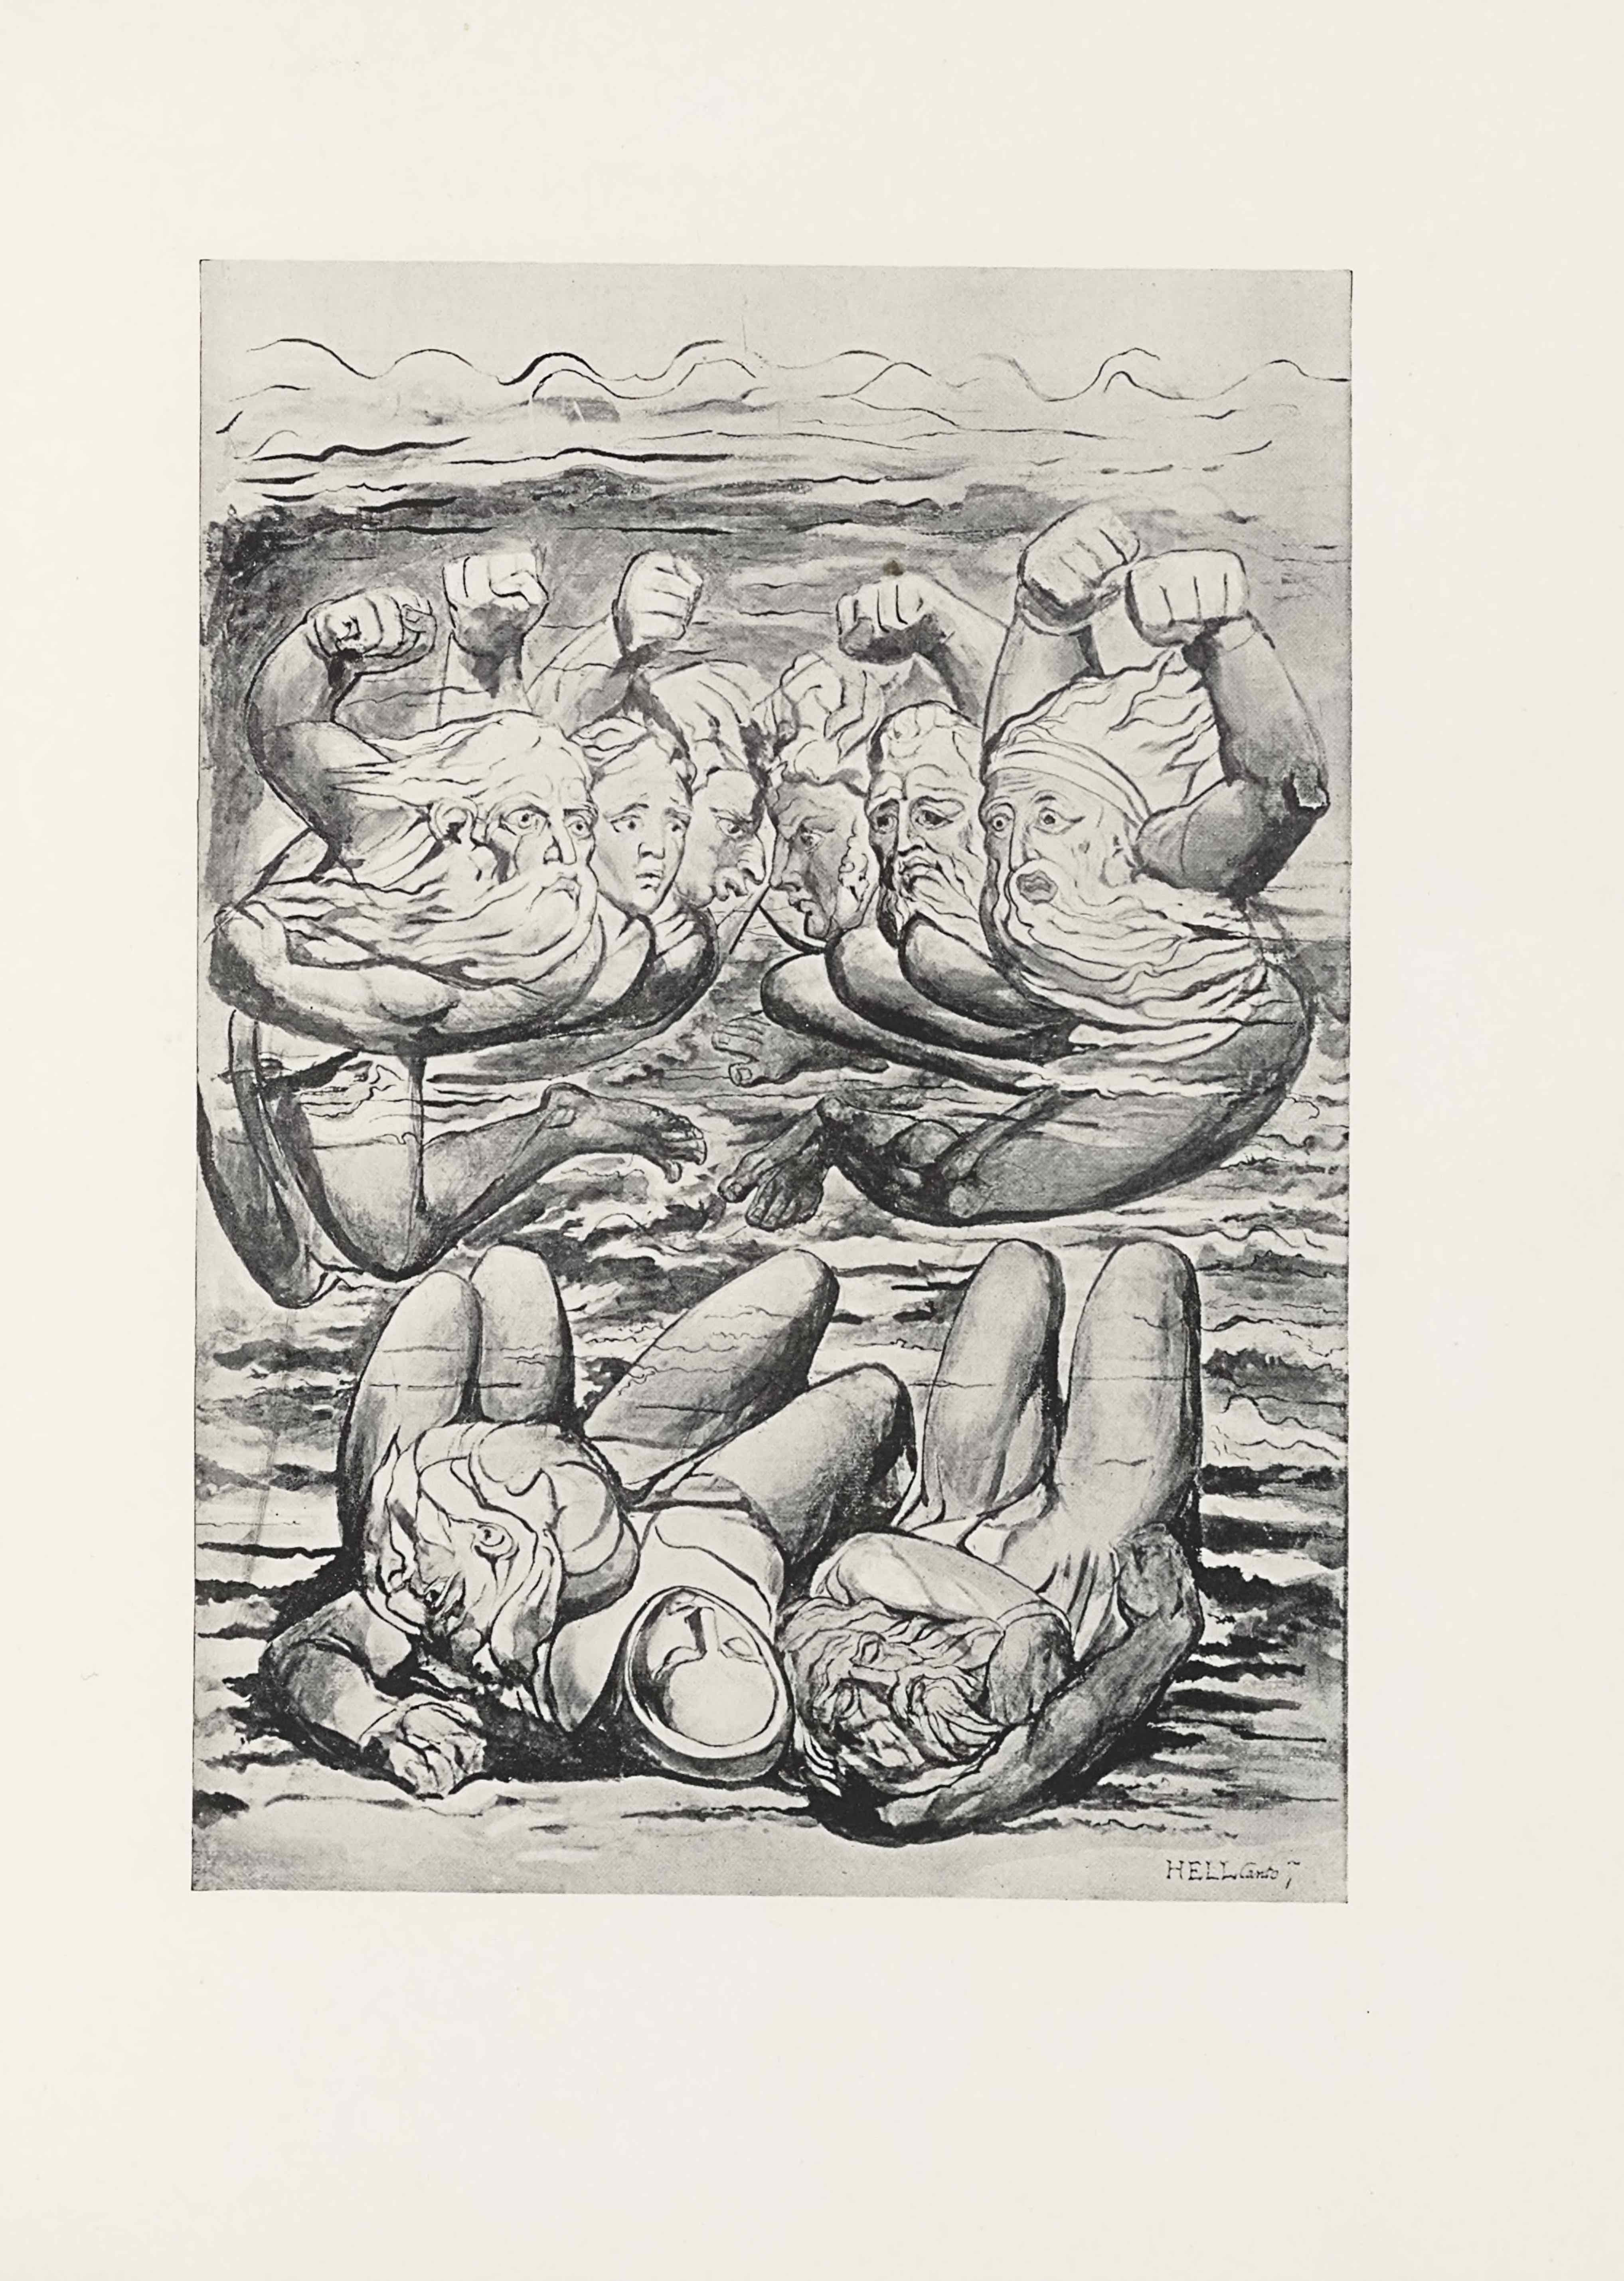 "This half-tone reproduction of a water-colour drawing by William Blake for Dante's Inferno is in portrait orientation. The image shows six figures in a line in the top two-thirds of the picture plane and three figures lying on their backs below in the bottom third. The three figures at the bottom are lying very close together, with their knees bent and the backs of their heads facing the viewer. The figure on the left has their left arm bent up with their hand resting above their head. The face is not visible, with only hair showing at the top of the head. The central figure is lying with their arms covered underneath the bodies of the two figures on either side. They have a head scarf wrapping tightly around the sides of their face. The figure's eyes are closed. The figure on the right is a man with his head twisted far to the right and his bearded face visible by the viewer. The man's eyes are closed. His left arm is wrapped across his body, with his hand tucked into his armpit. He has long hair that flows in waves around his head. The series of six figures at the top of the composition are floating above the three figures on the bottom. The six floating figures are a mirror image of each other in poses, with each figure's outer arm raised up with a clenched fist. The figure on the far left is a man who has his body facing the left side, but his upper body twisted to face to the right. He has bare feet and bare legs that are translucent, giving way to the background coming through. He has his right arm raised in a fist, and his left arm is reaching across his body. He has a long wavy beard and long hair on his head. Slightly to his right and backgrounded is the second figure. This figure is limitedly visible, showing only a raised right fist and a face with a crease between the eyebrows, and a mouth opened in an ""O"" shape. To the right of this figure and slightly backgrounded is the third figure. This figure has the right fist raised as well, and only the face visible. This figure is visible only in profile. The figure has large lips that are extended far out from the face. The figure also has a long and protruding nose. To the right of this figure, and equally backgrounded, is a figure also visible only in profile, but turned to face to the left and staring directly at the opposition. This figure has the left fist raised and clenched. The figure has downturned lips and a crease between the eyebrows. To the right and slightly foregrounded is another figure with the left fist raised. This figure has a wavy beard and matching hair, both long. The figure has slightly downturned lips and large pupils. The figure is looking off into the distant left of the page, with a crease between the eyebrows. To the right and foregrounded is the sixth figure. This figure has his whole body visible. The figure has his left fist raised and his legs are sticking out towards the centre of the composition. He has a long wavy beard and hair, which covers up his whole upper body. He has wide eyes and raised eyebrows. His mouth is in an ""O"" shape. In the background of all of the figures on the page is a series of horizontal wavy lines, in wave-like shapes in the bottom half. In the upper half the lines become less wavy and look like air waves in the sky. Between the lines is dark shading until the top fifth of the page where the background becomes much lighter. In the bottom right corner there is the text: ""HELL Canto 7""."